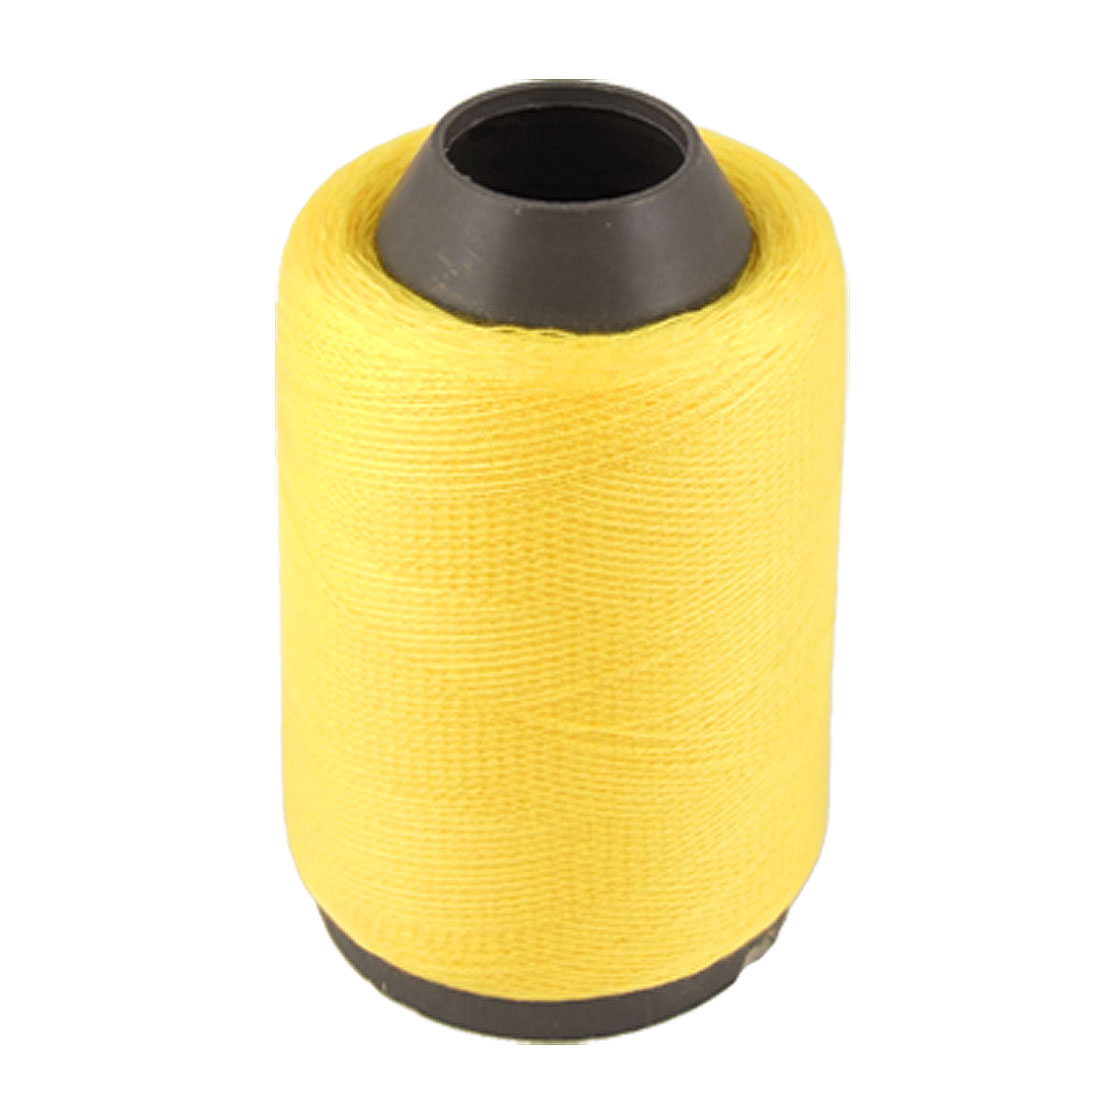 Tailoring Yellow Cotton Sewing Thread Reel String Spool